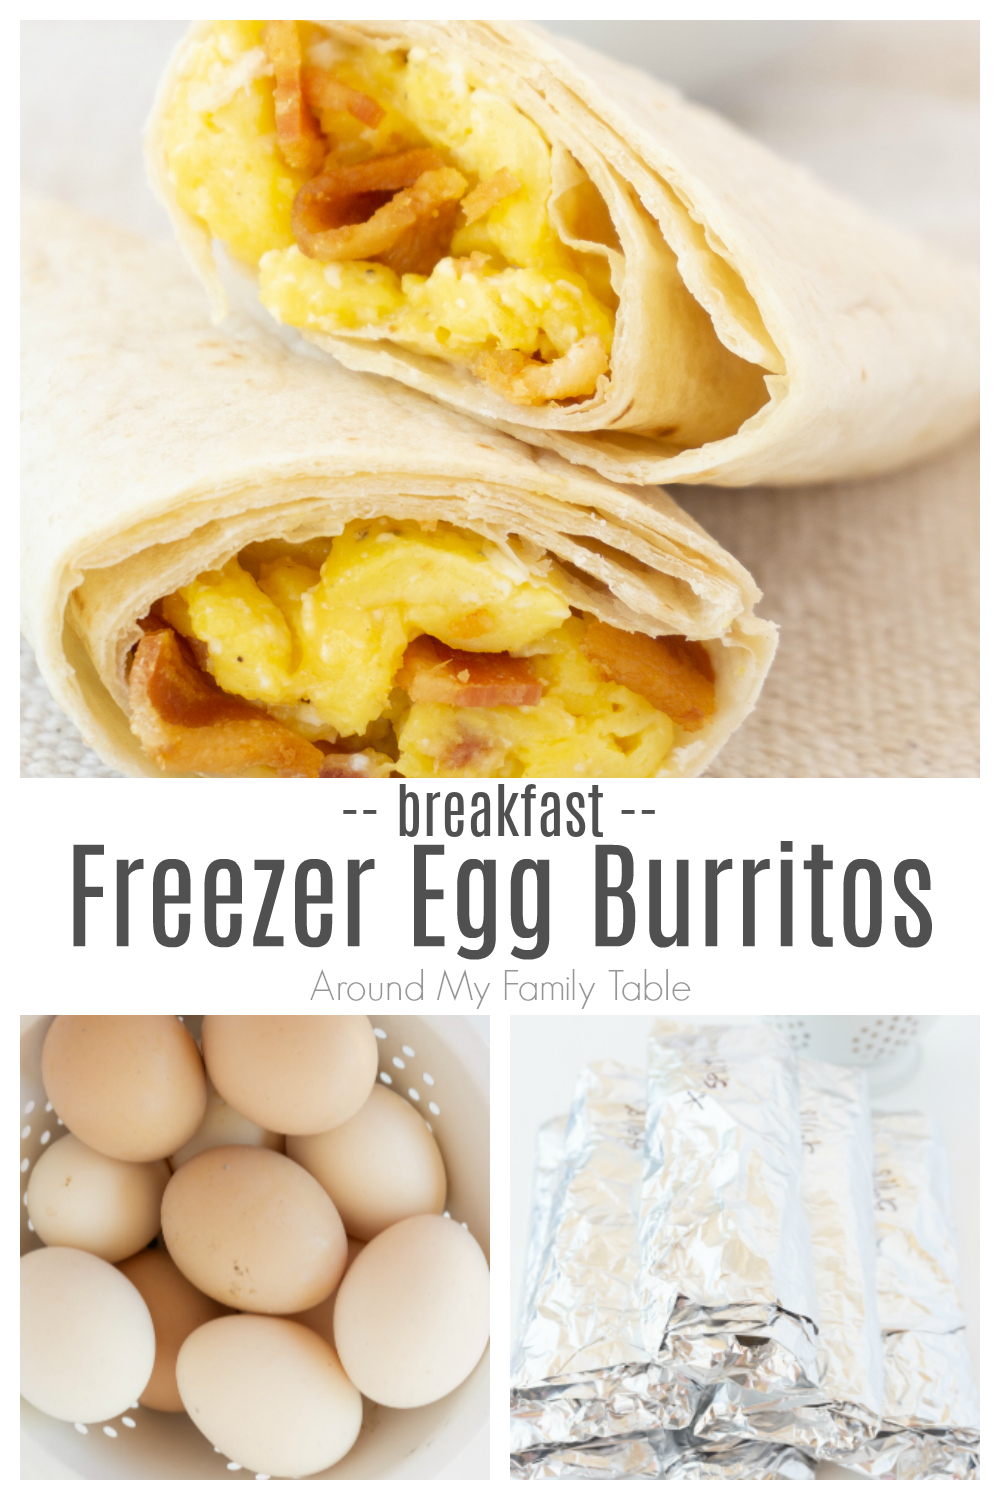 Freezer breakfast burritos are an easy meal prep idea for busy mornings. The recipe comes together quickly and they freeze beautifully. Everyone who tries the scrambled egg burritos loves them! via @slingmama